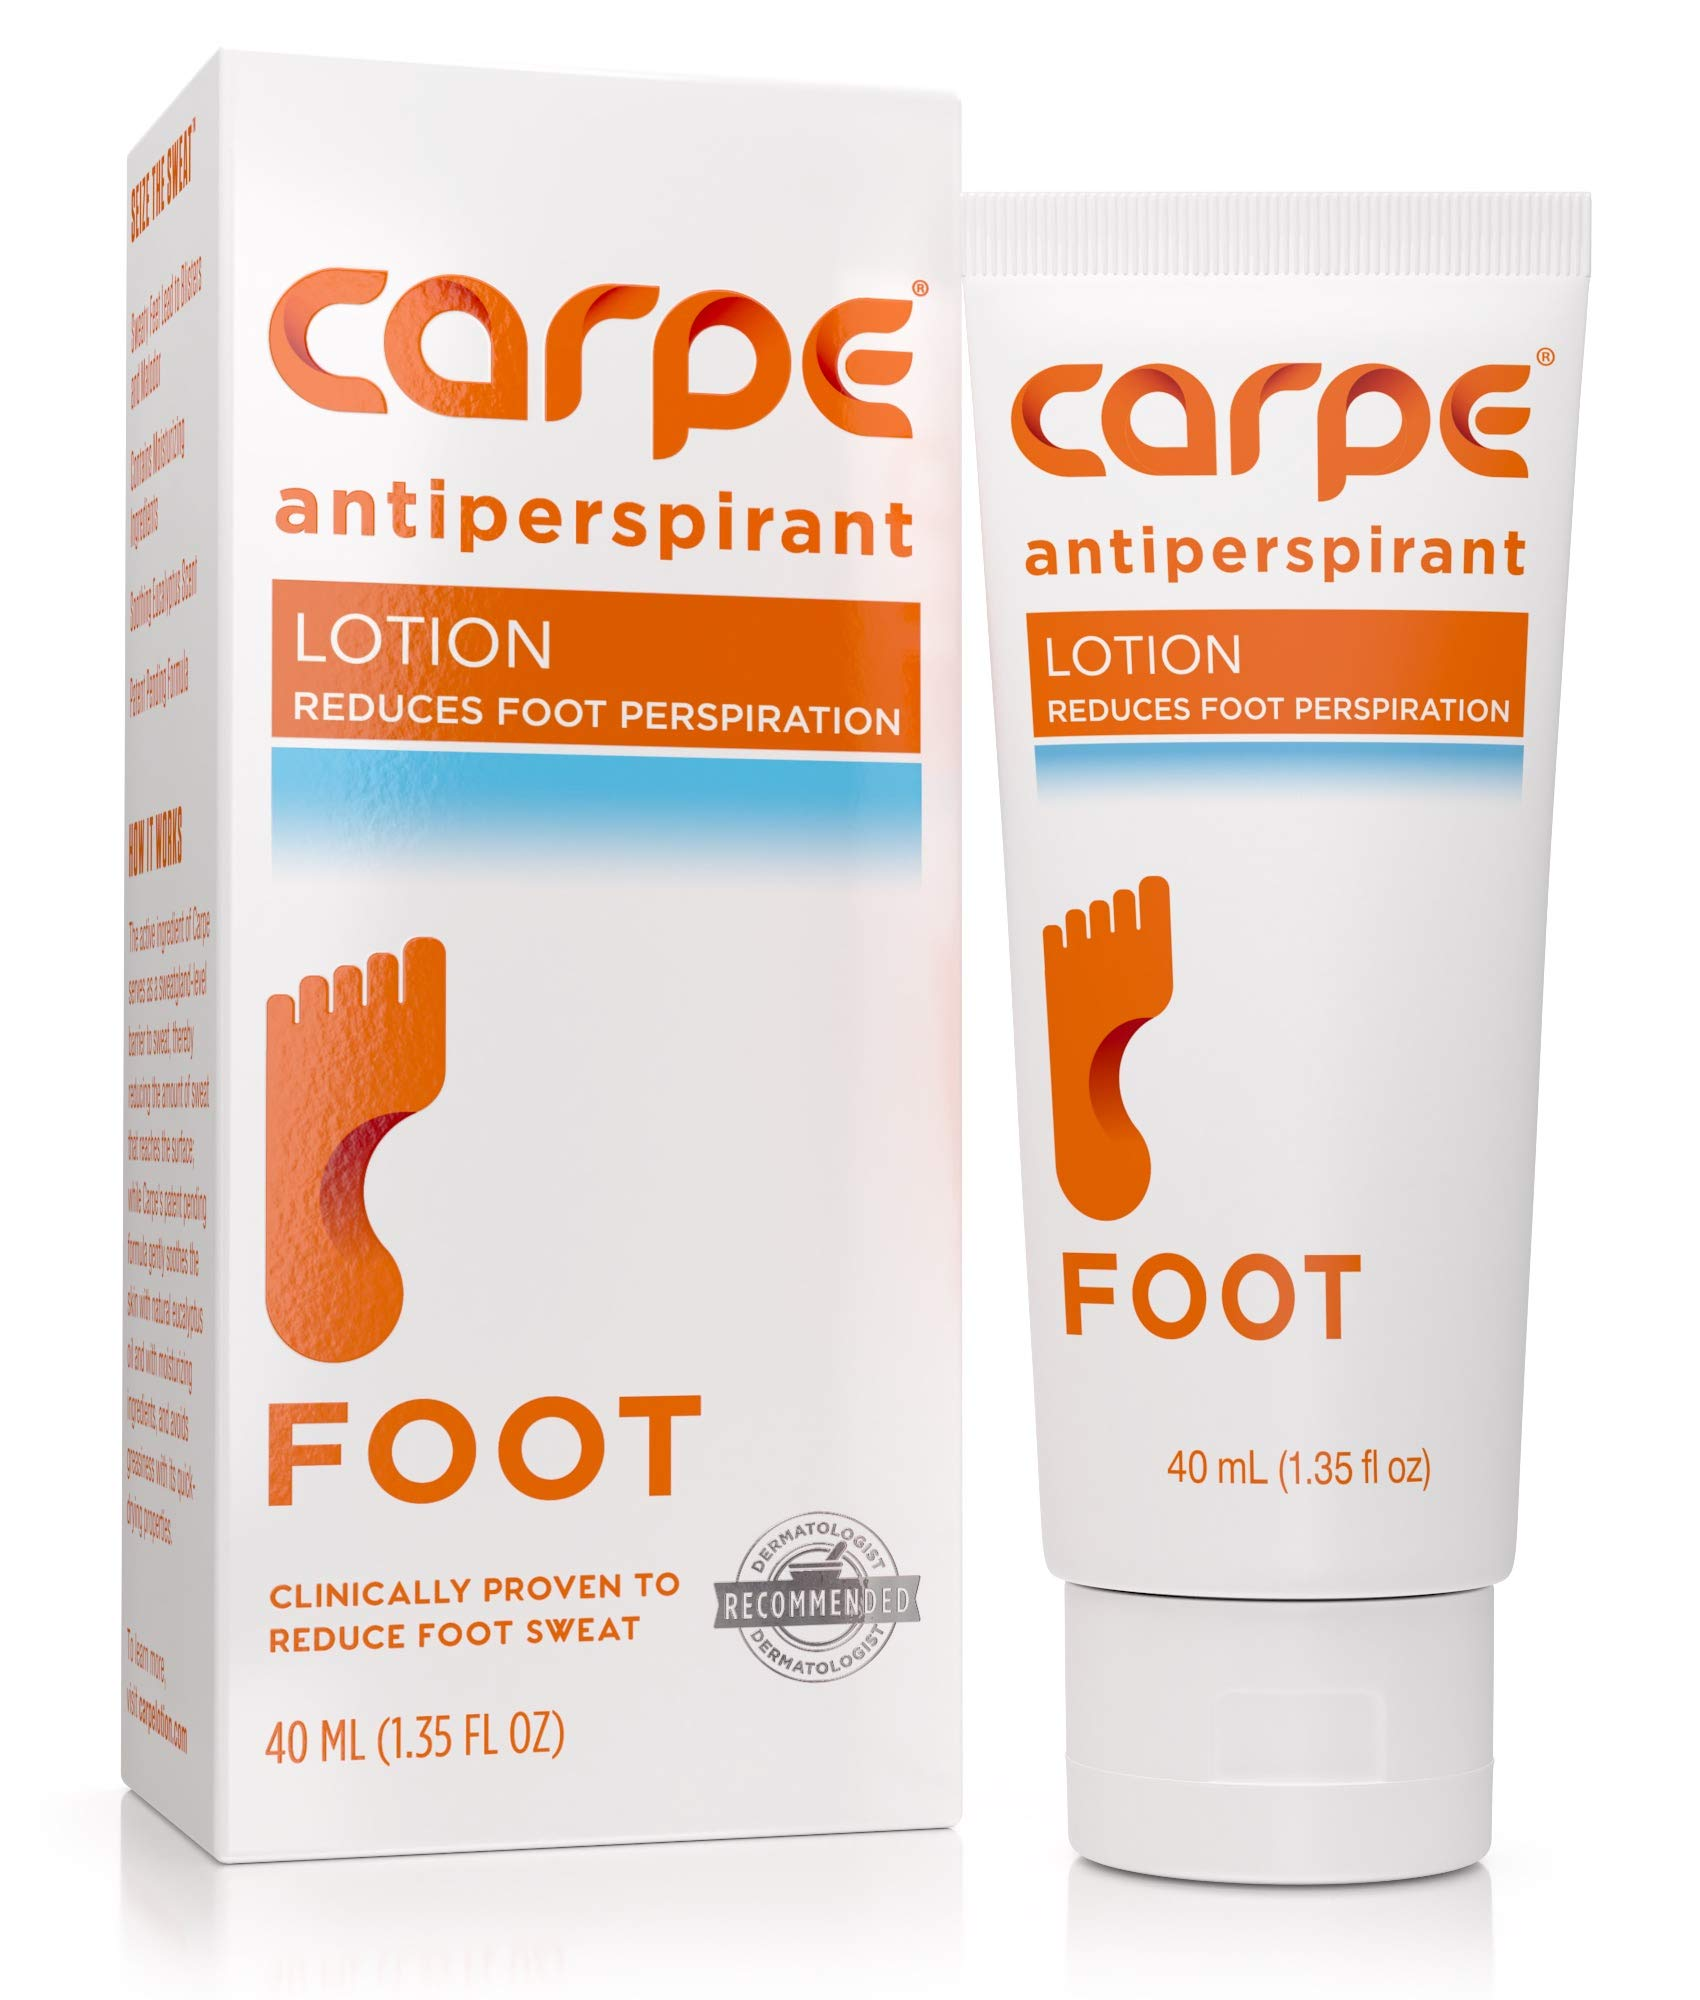 Carpe Antiperspirant Foot Lotion, A Dermatologist-Recommended Solution to Stop Sweaty, Smelly feet, Helps Prevent blisters, Great for hyperhidrosis by Carpe